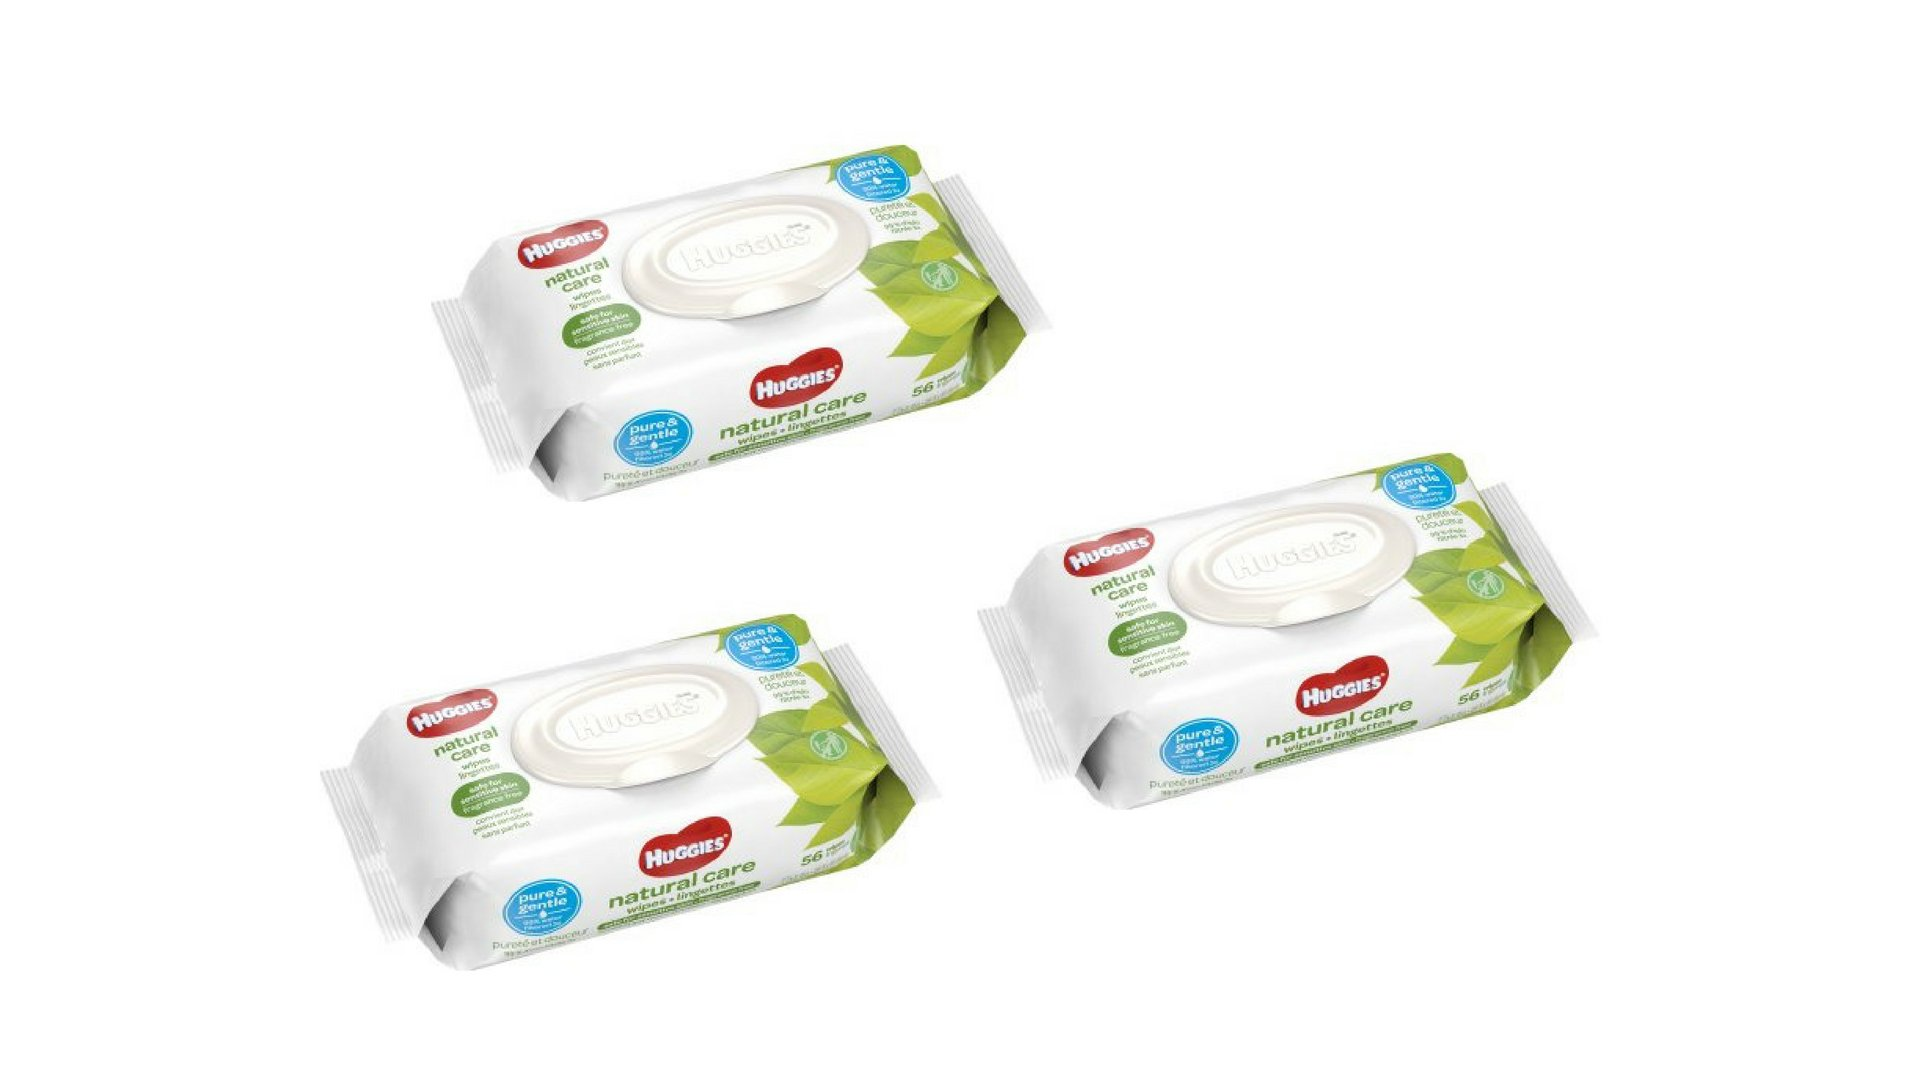 Natural Care Baby Wipes, Unscented (56 count) Per Pack, Pack of 3, (168 CT)